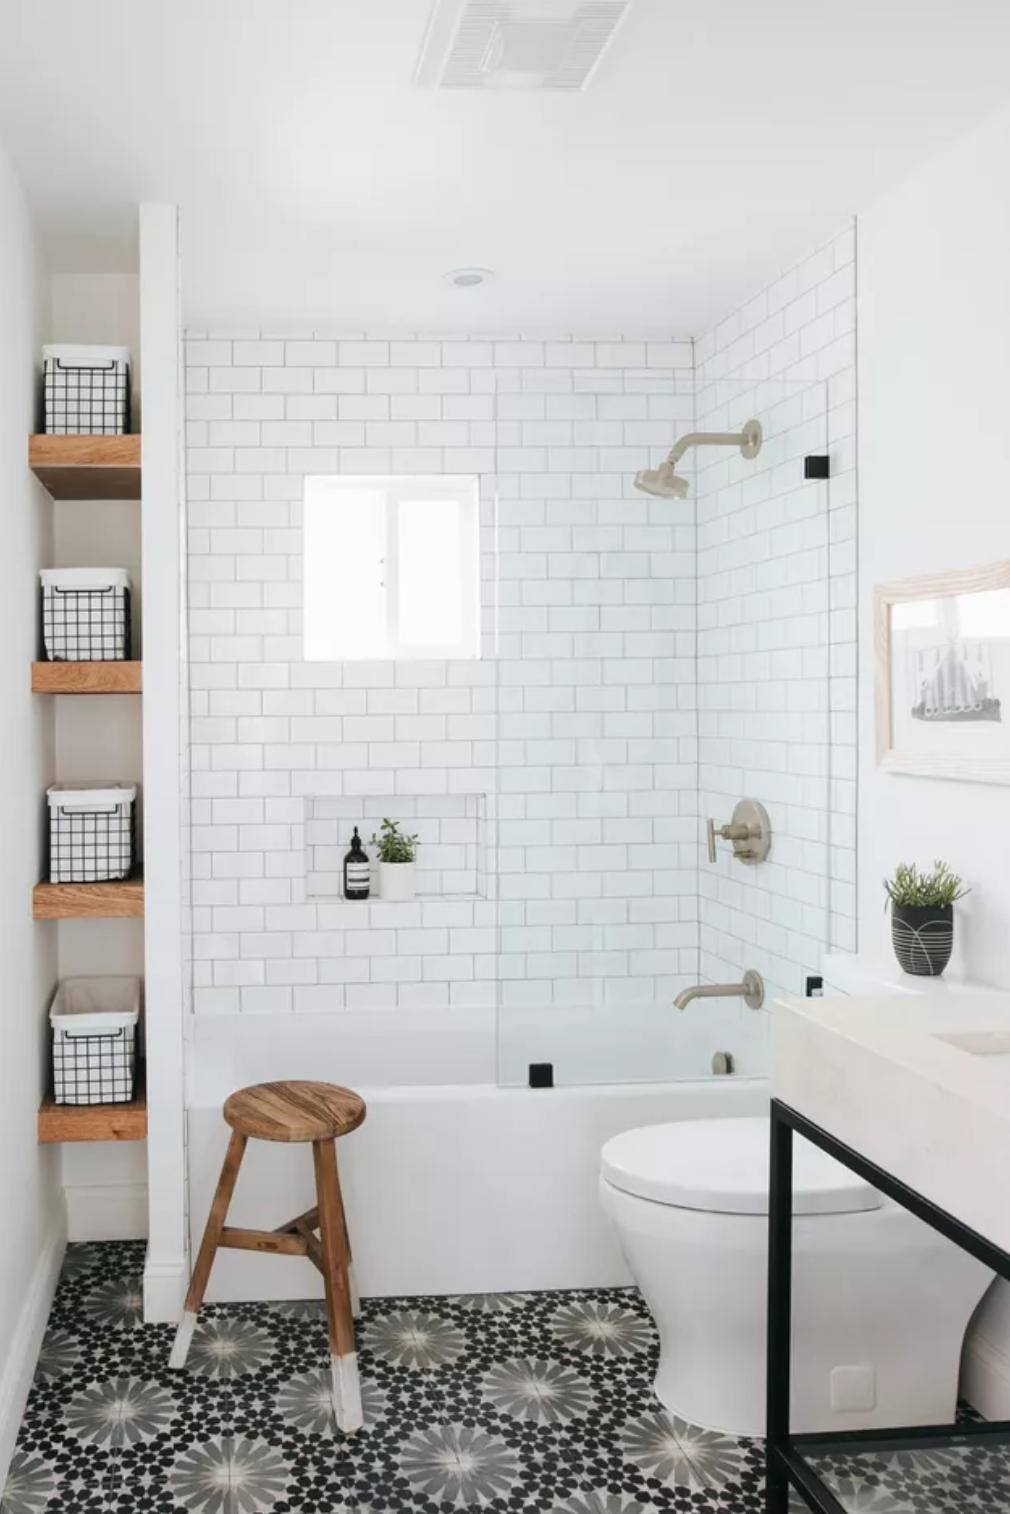 Make the bathtub a few inches shorter to make room for a row of open shelves for storage.